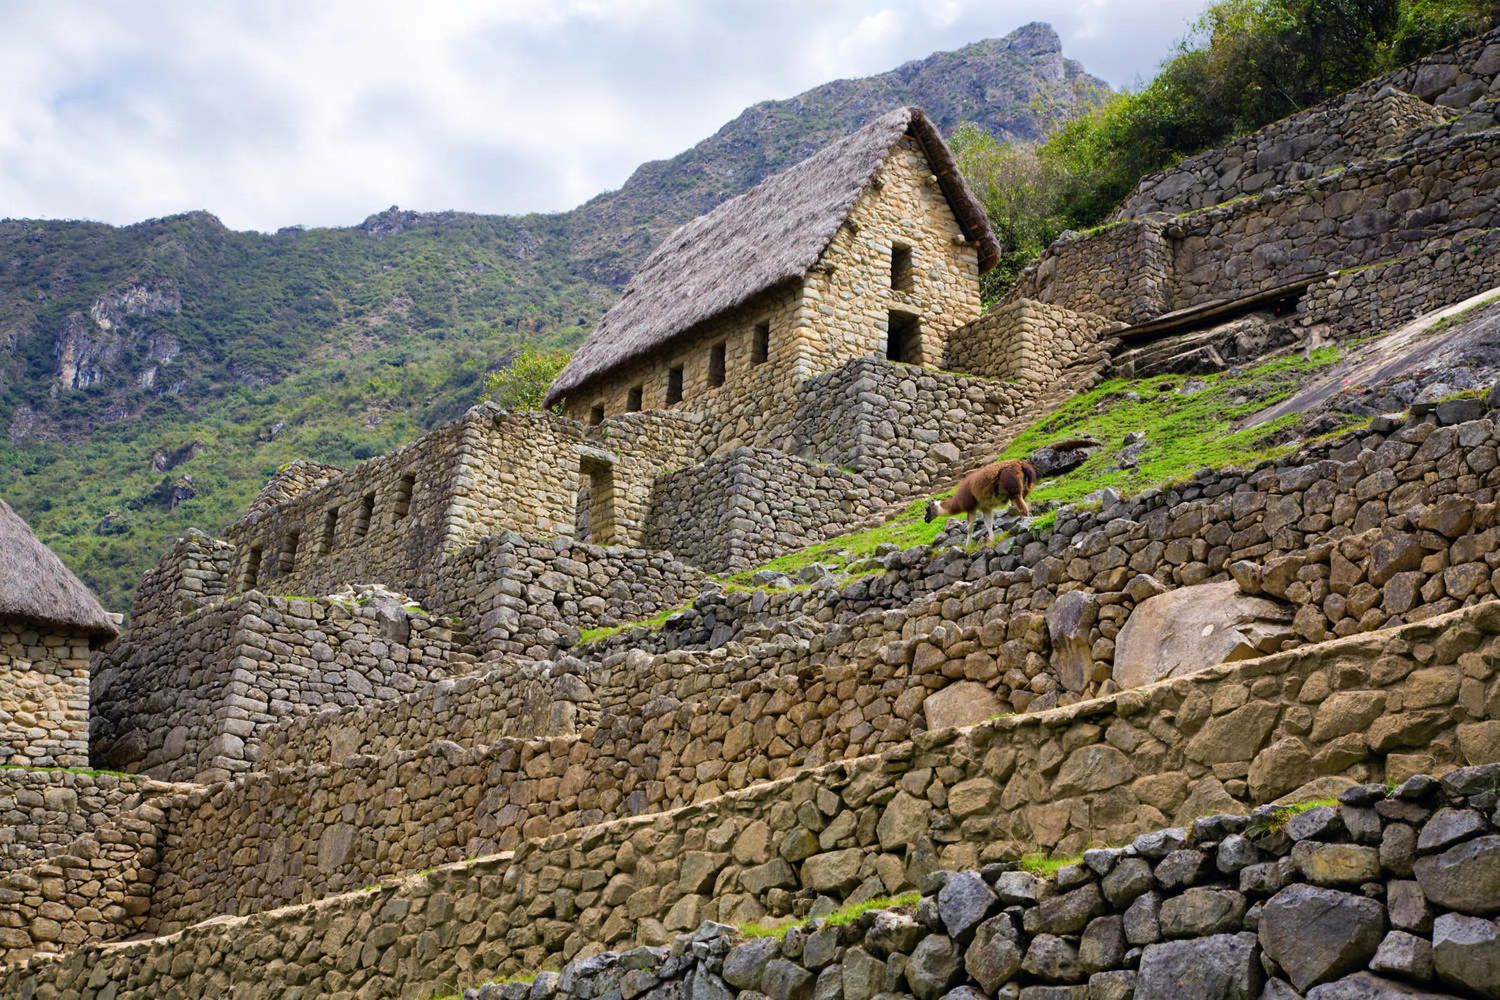 Inca house at Machu Picchu archaeological site